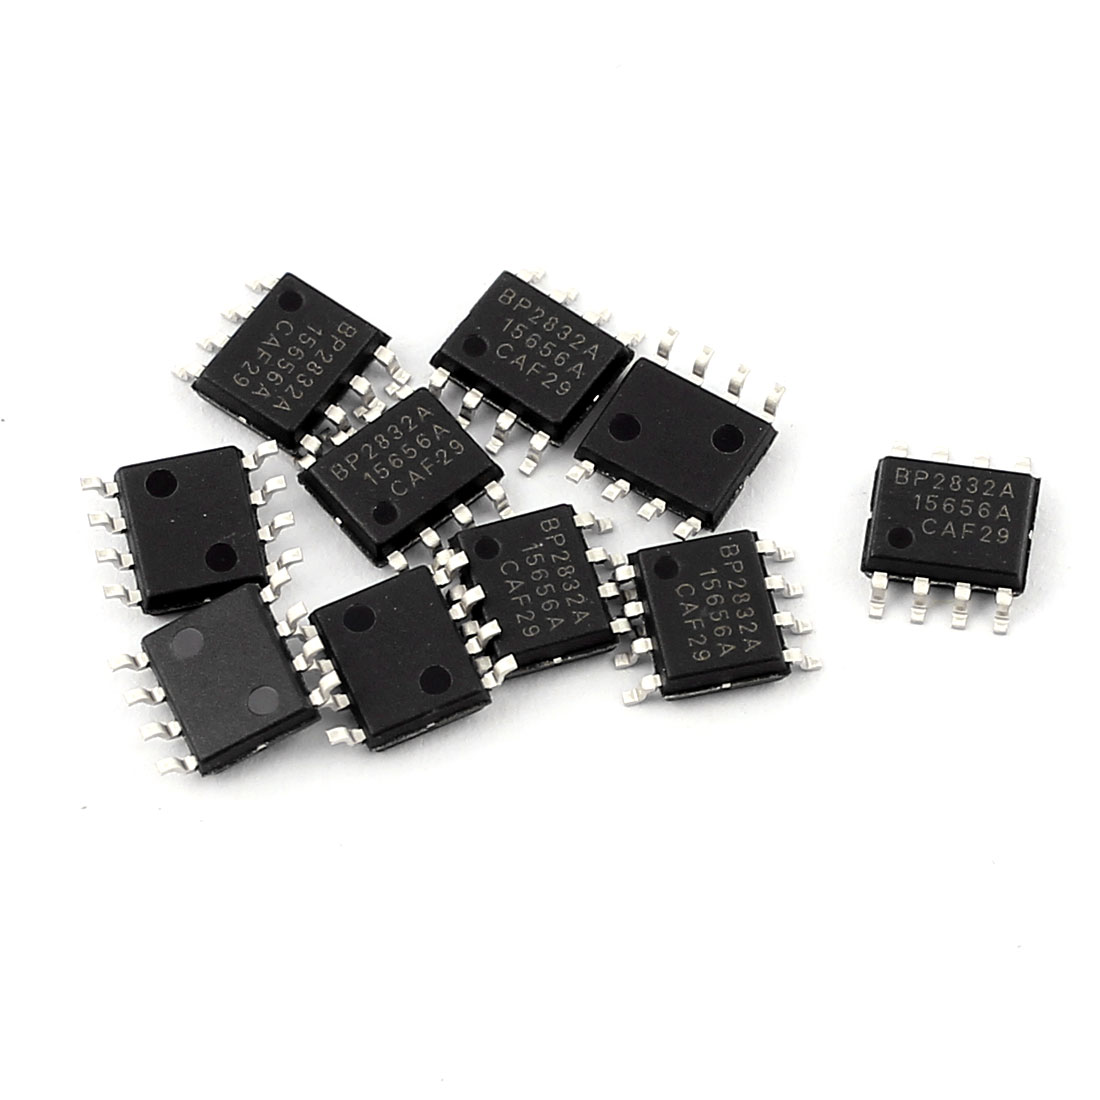 10Pcs BP2832A SOP-8 SMD SMT Type PCB Surface Mount LED Driver Circuit Module Integrated Circuit IC Chip